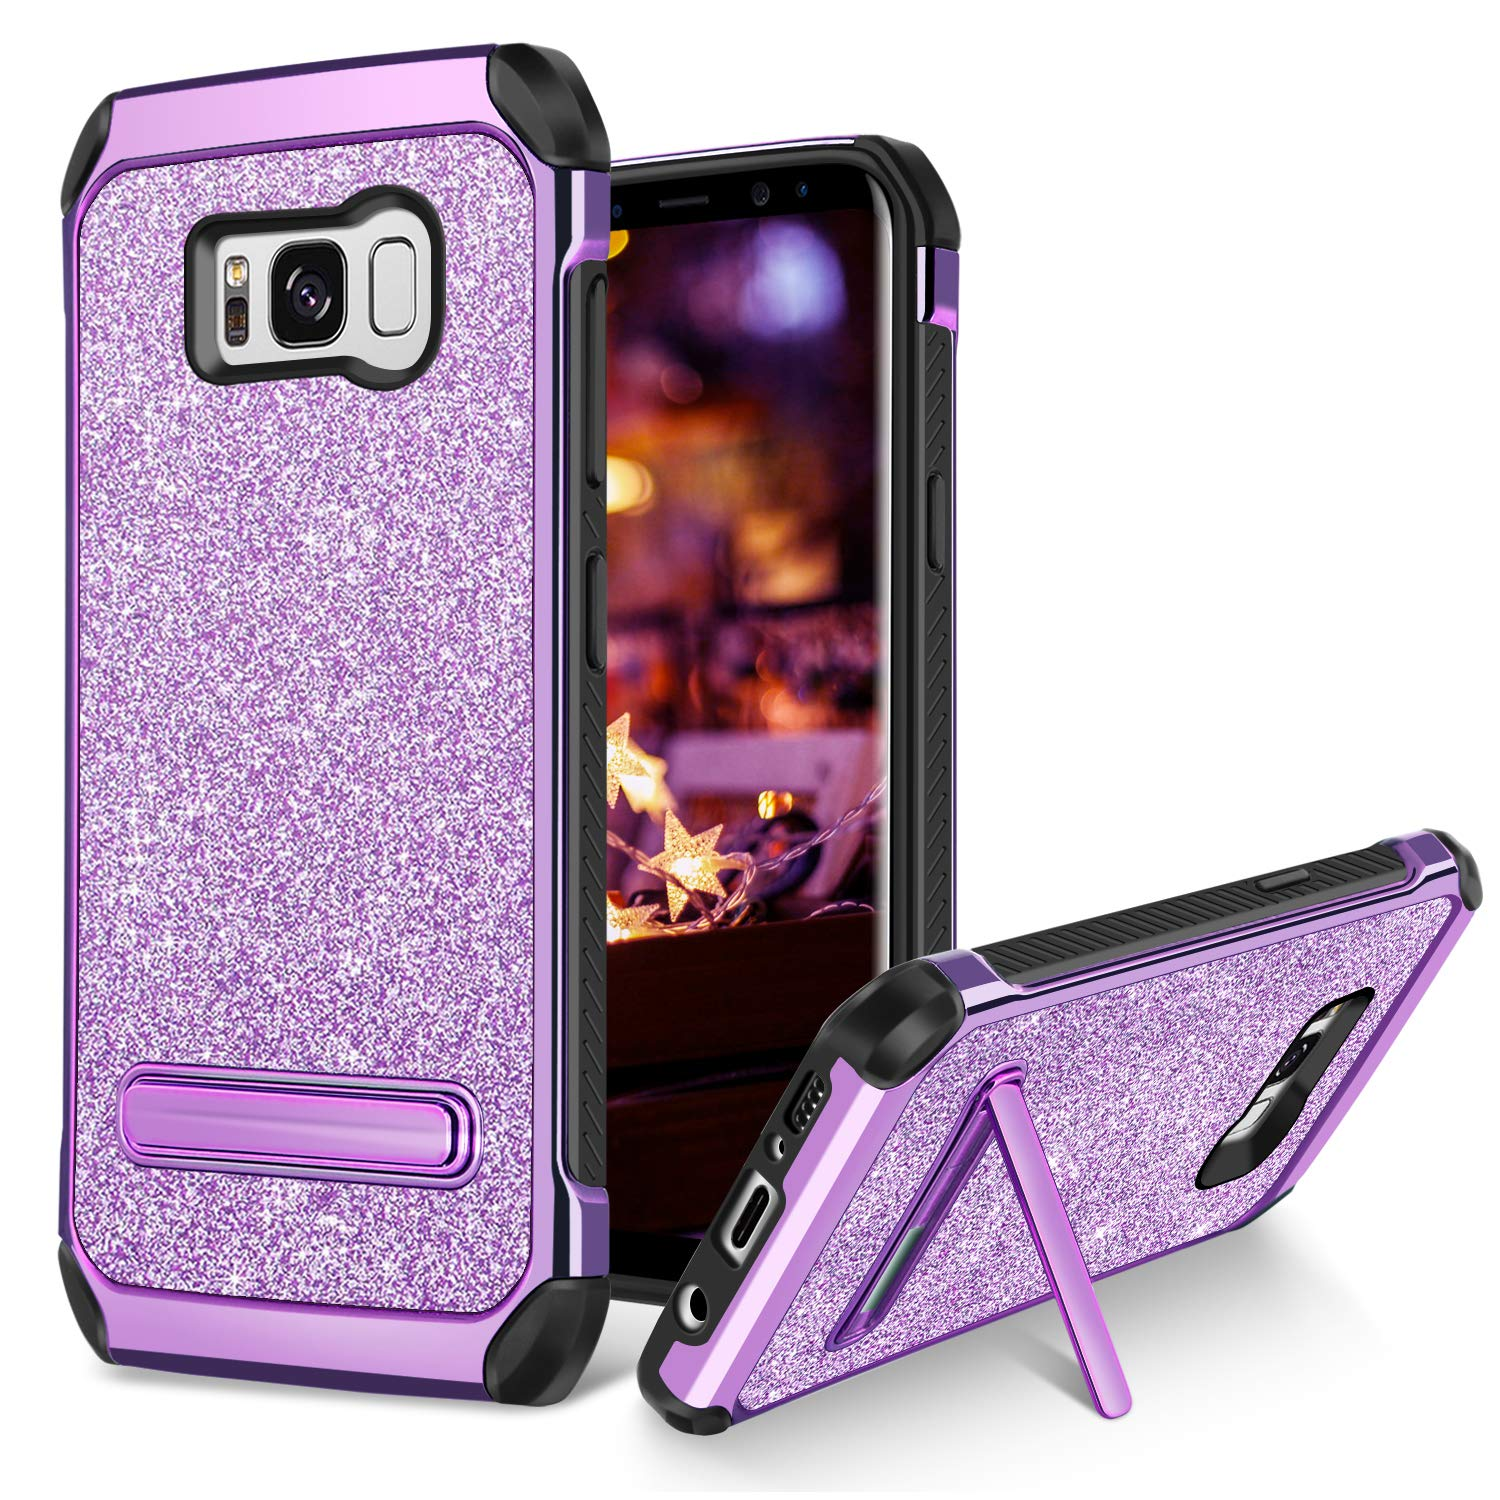 d3371f20f BENTOBEN Case for Galaxy S8 Plus 2 in 1 Kickstand Design Shockproof  Protective Glitter Shiny Girl Women Faux Leather Hard Case Full Body Soft  Bumper Phone ...